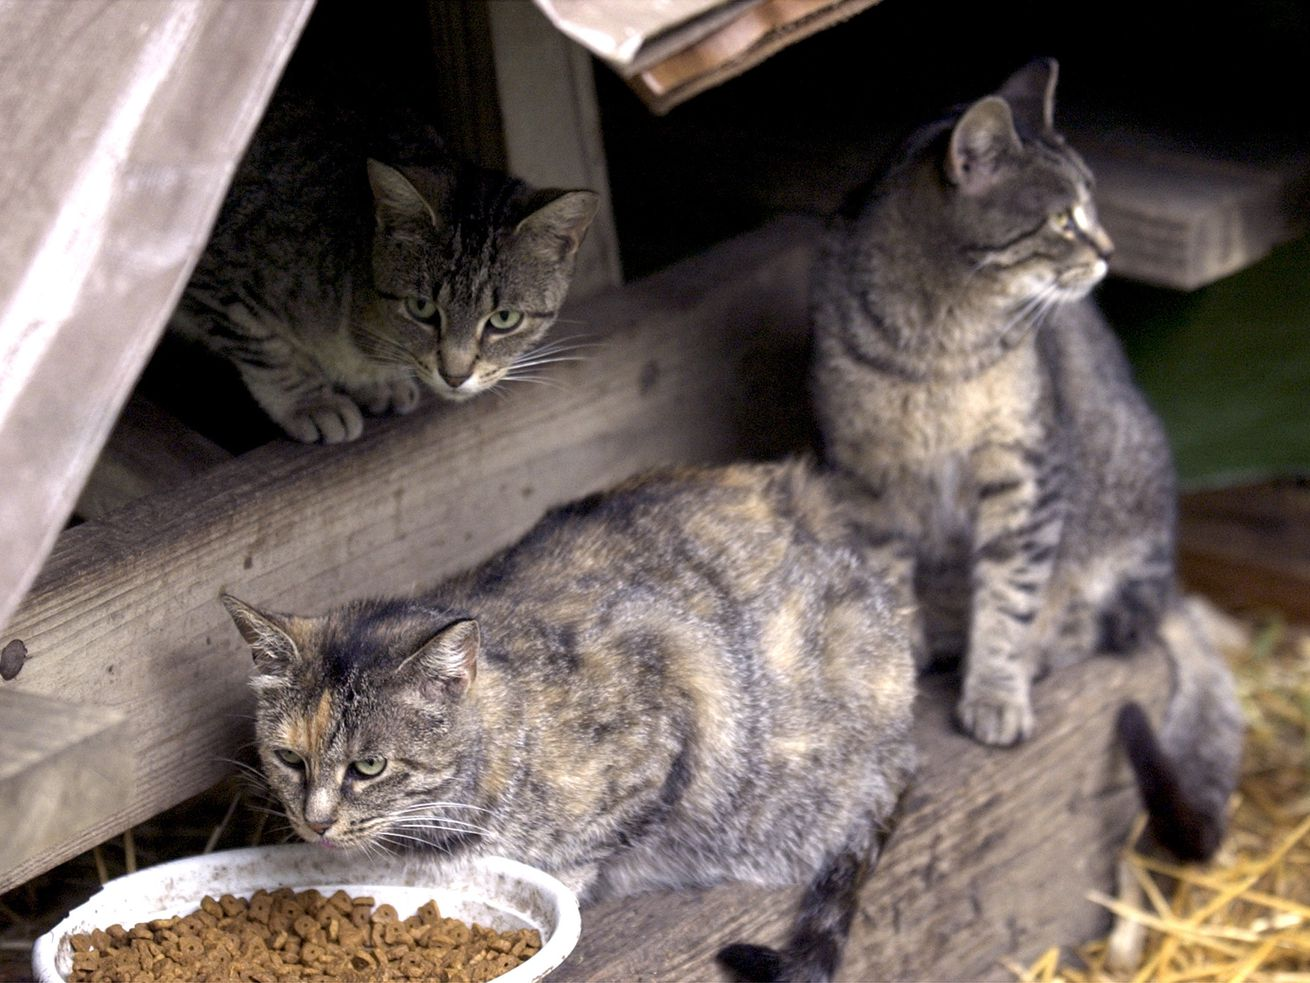 People may feel sorry for stray cats, but they also should feel sorry for the birds who will be killed by the cats